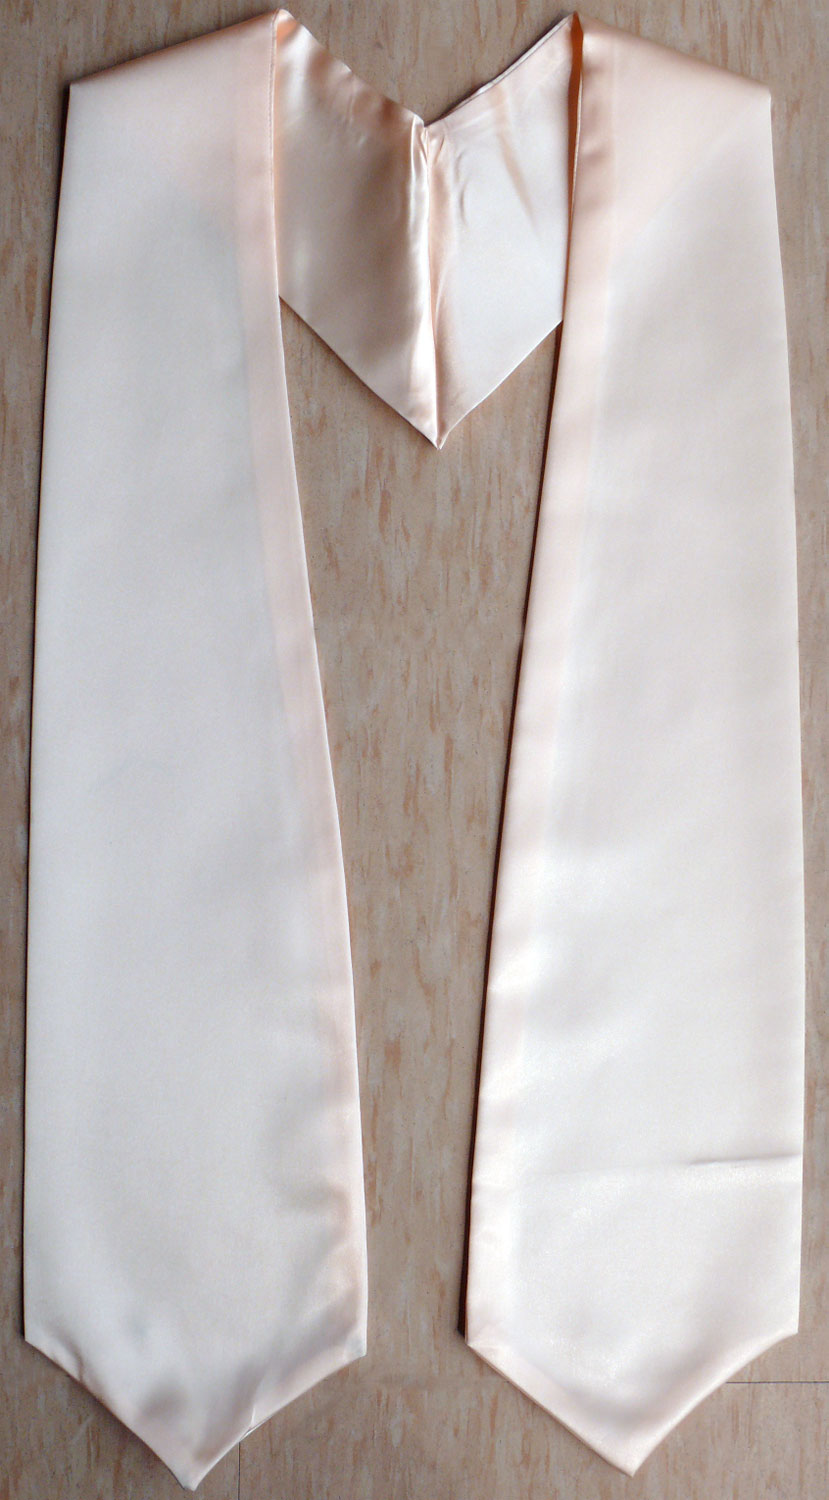 Peach Plain Graduation Stoles